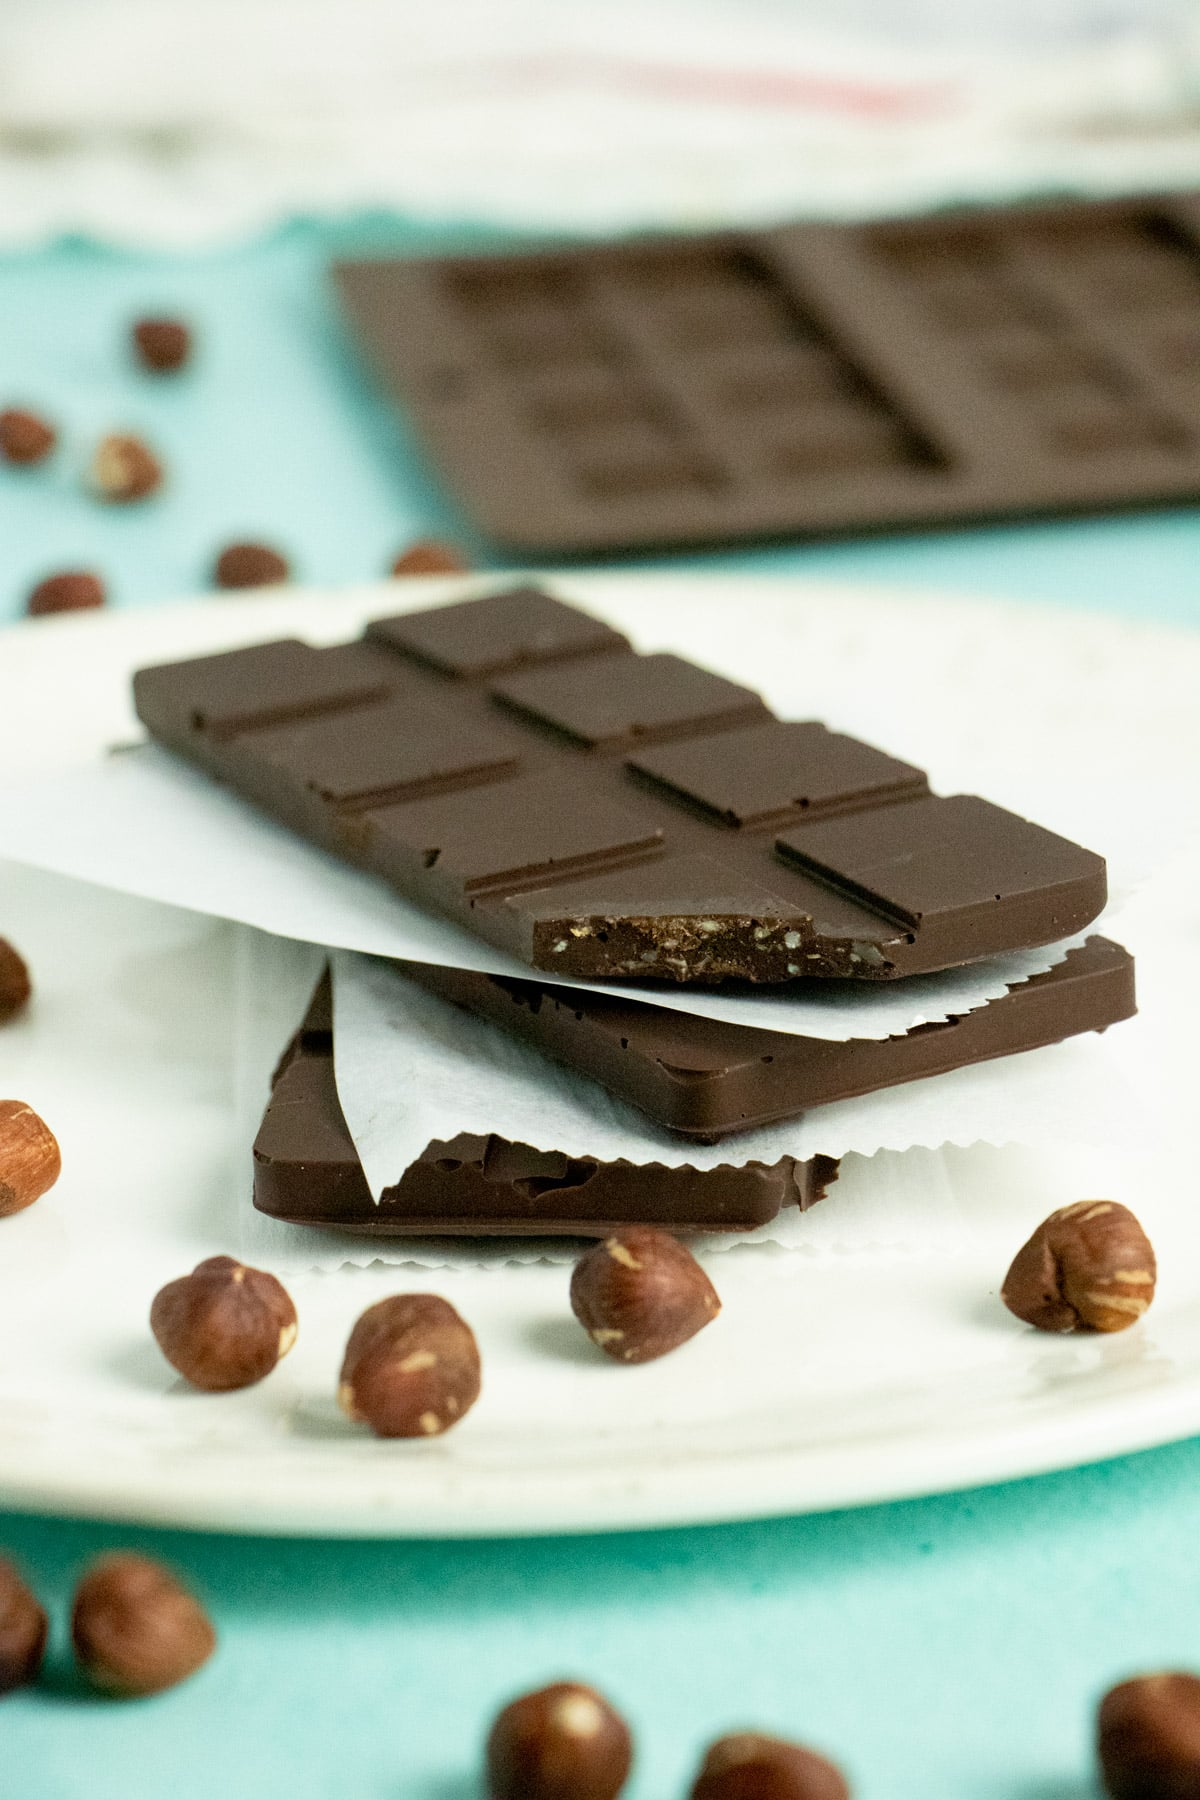 stack of homemade vegan hazelnut chocolate bars on a white plate surrounded by raw hazelnuts. Chocolate bar mold in the background